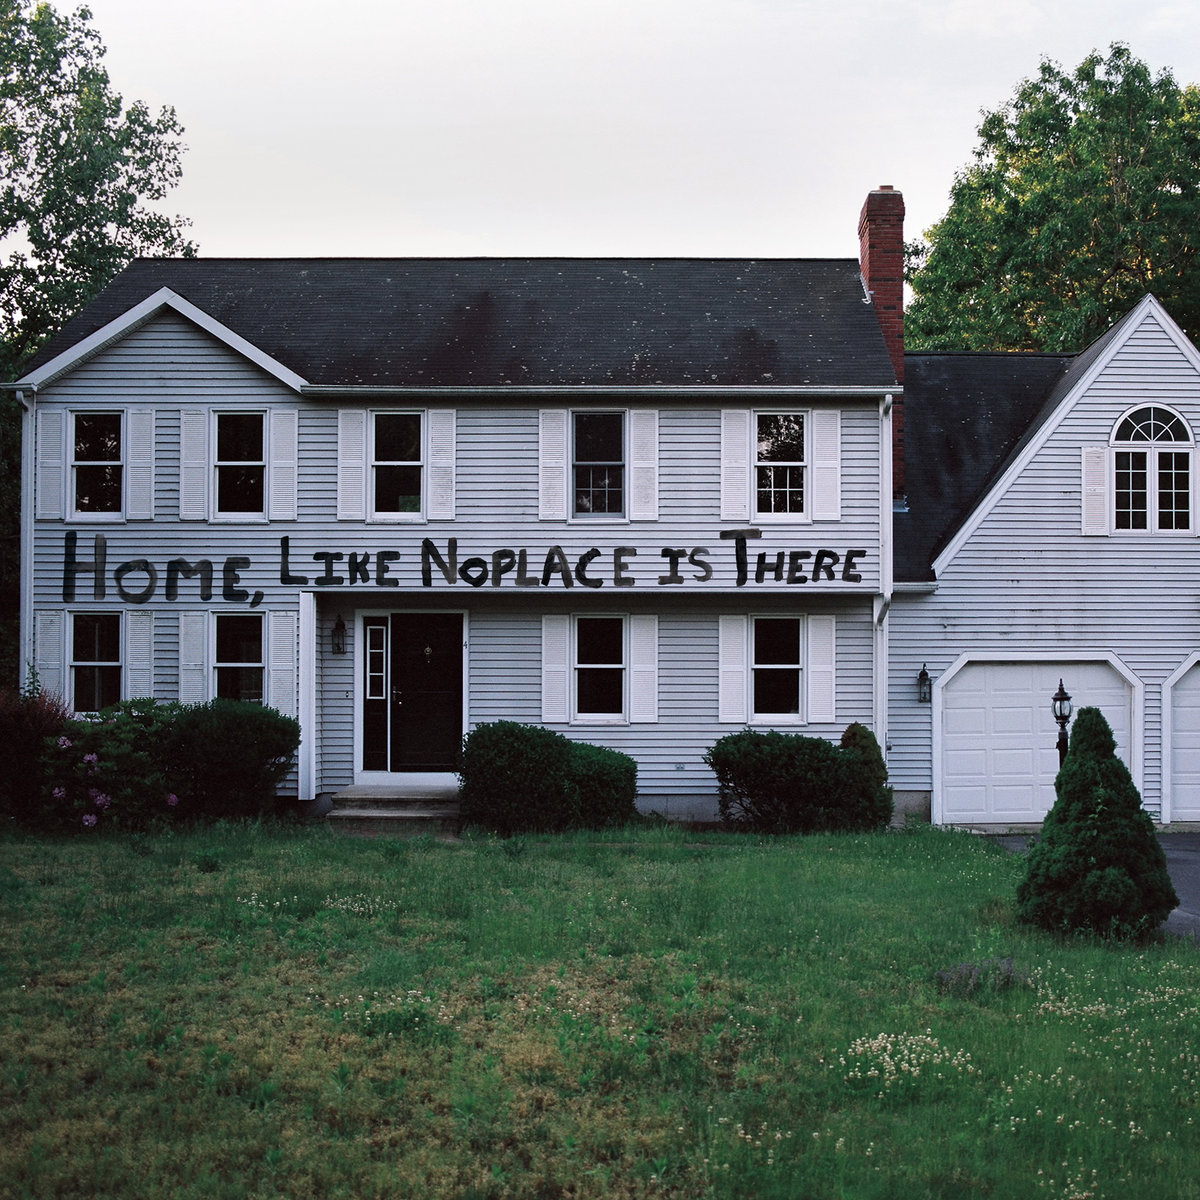 Home like noplace is there the hotelier Home by home